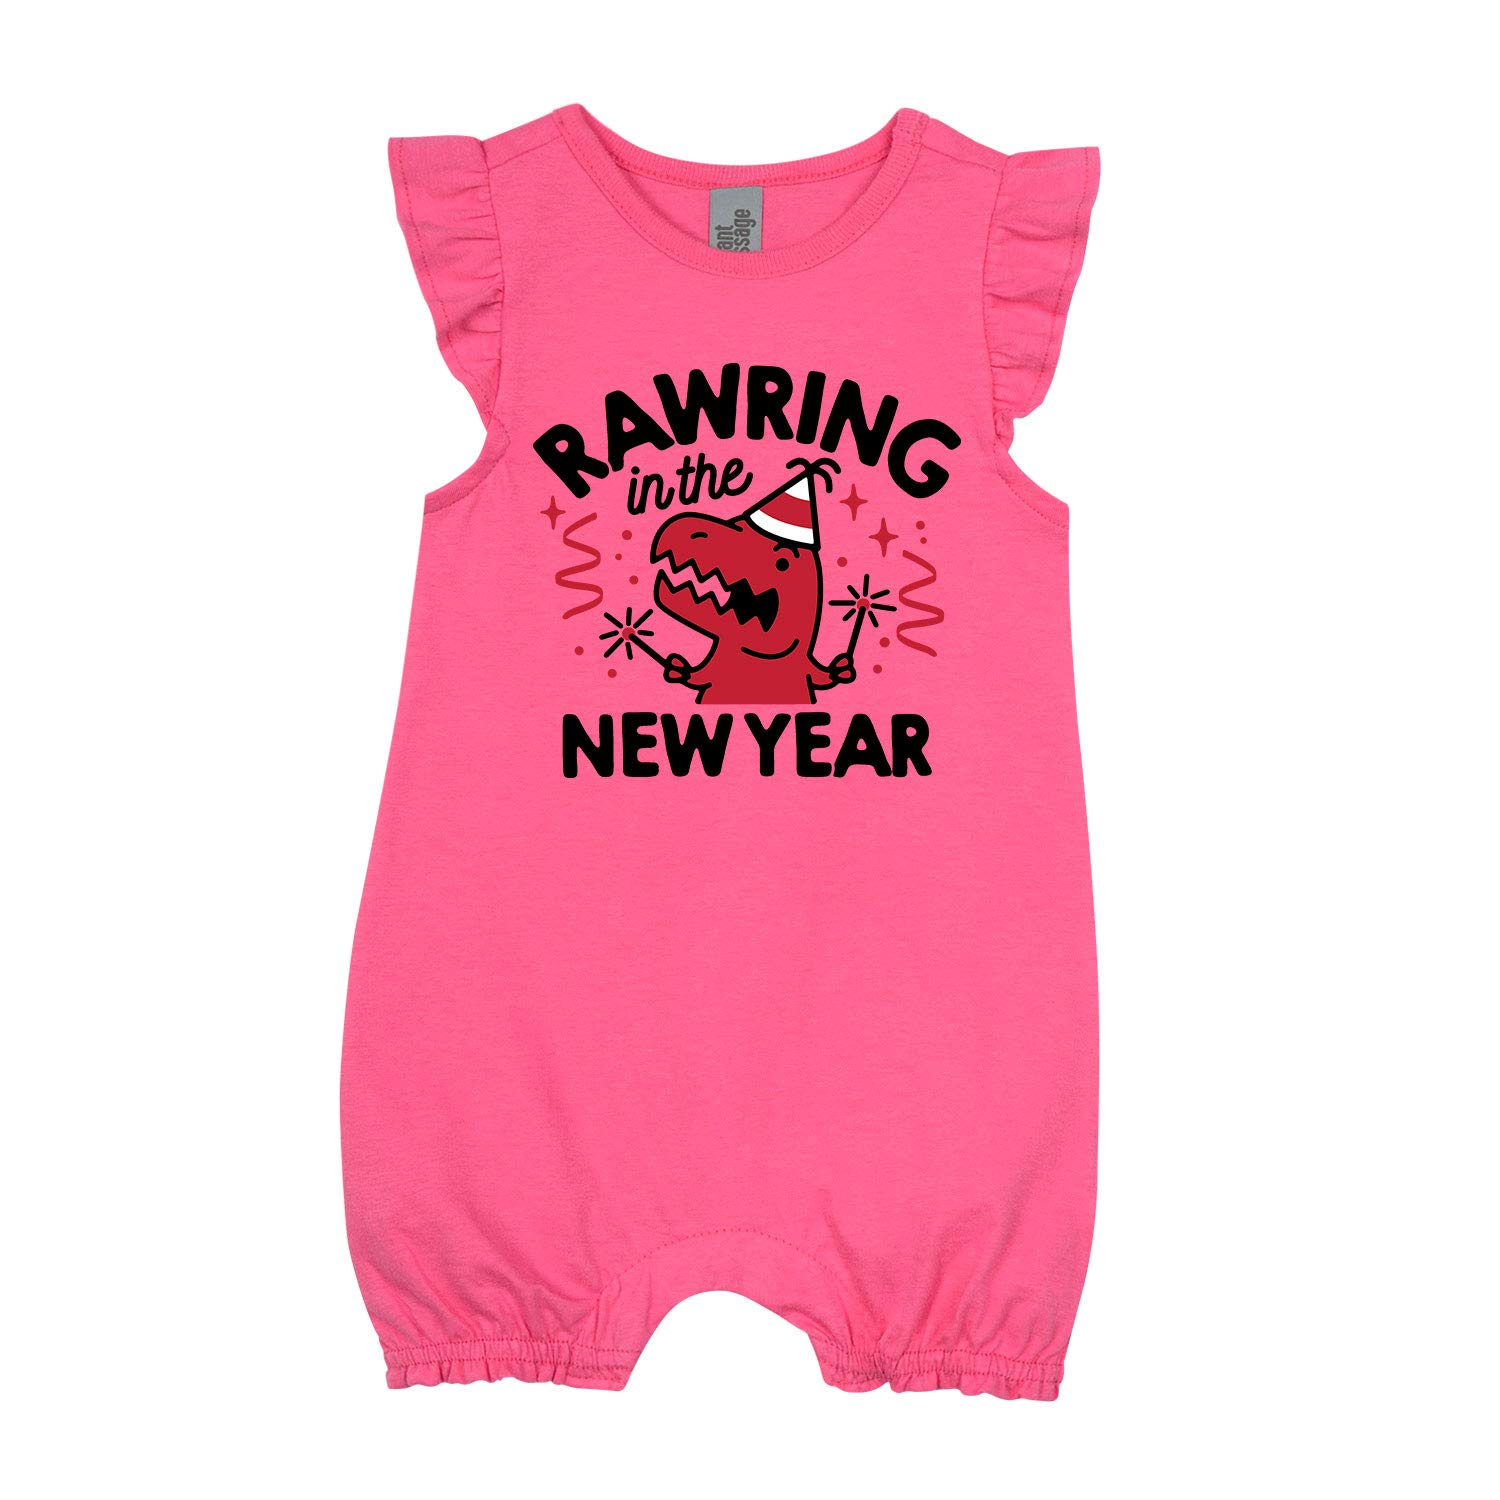 First New Year InfantFlutter Romper Rawring in New Year